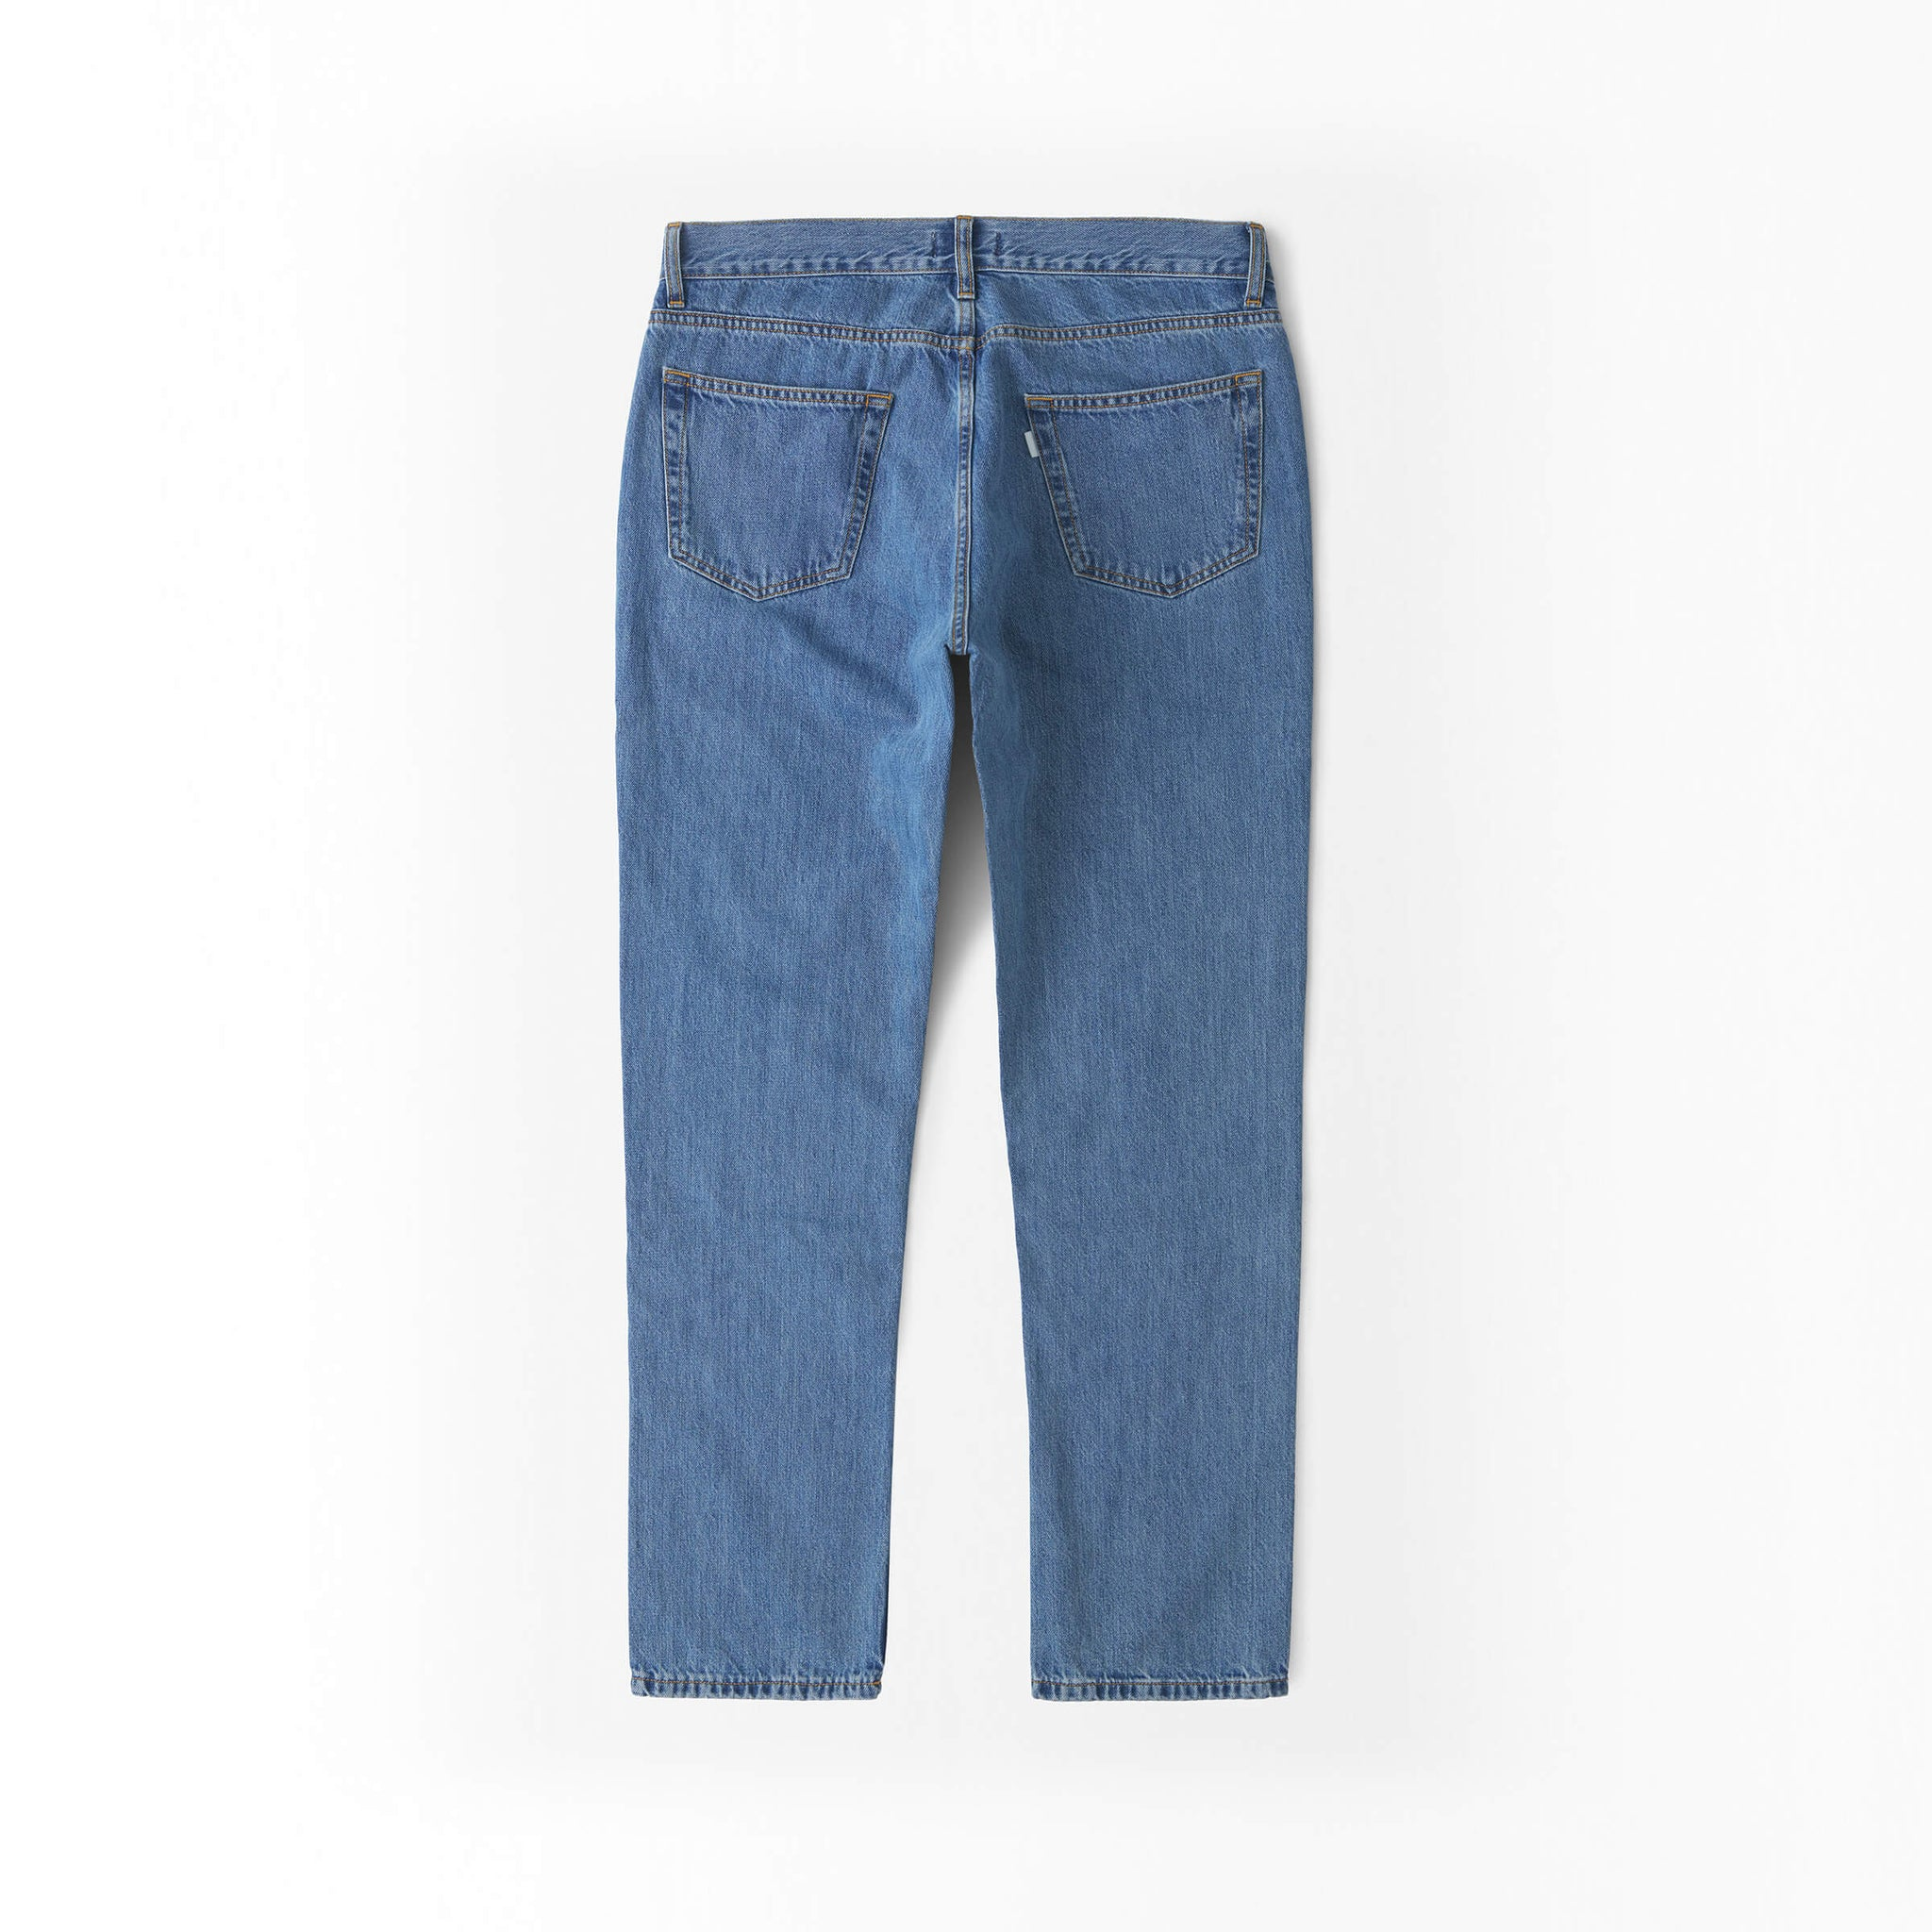 Straight Jeans in Denim made from organic cotton